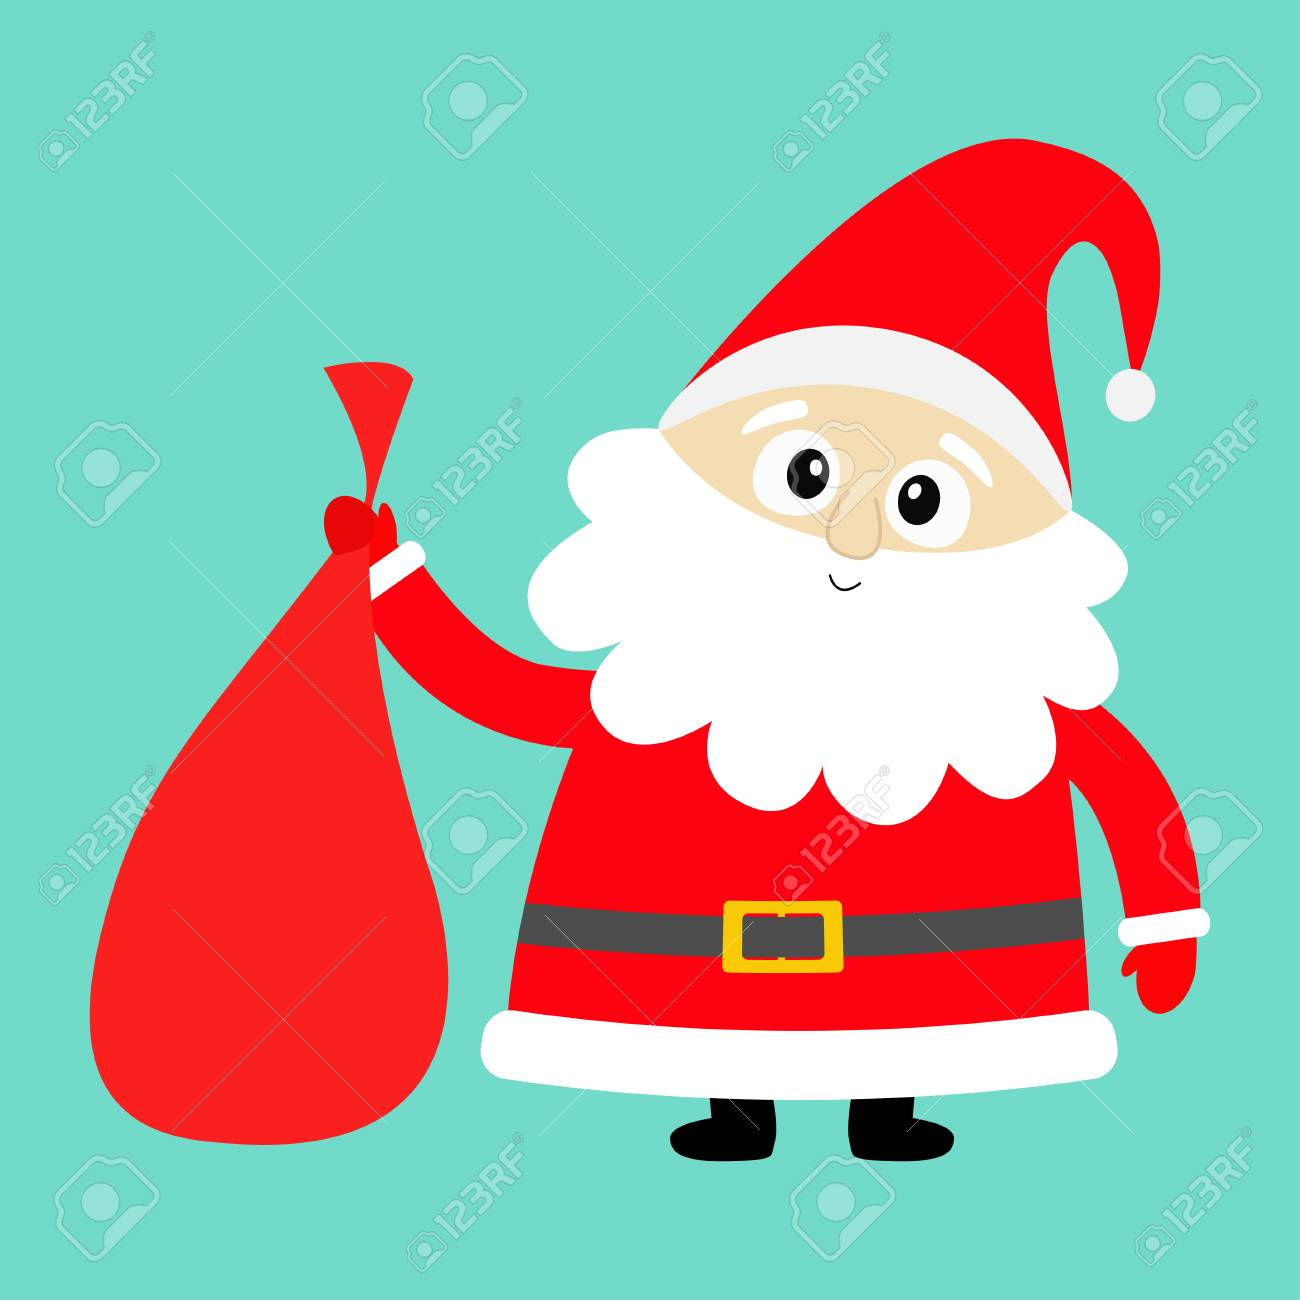 Santa Claus Holding Carrying Sack Gift Bag Red Hat Costume Royalty Free Cliparts Vectors And Stock Illustration Image 127560890